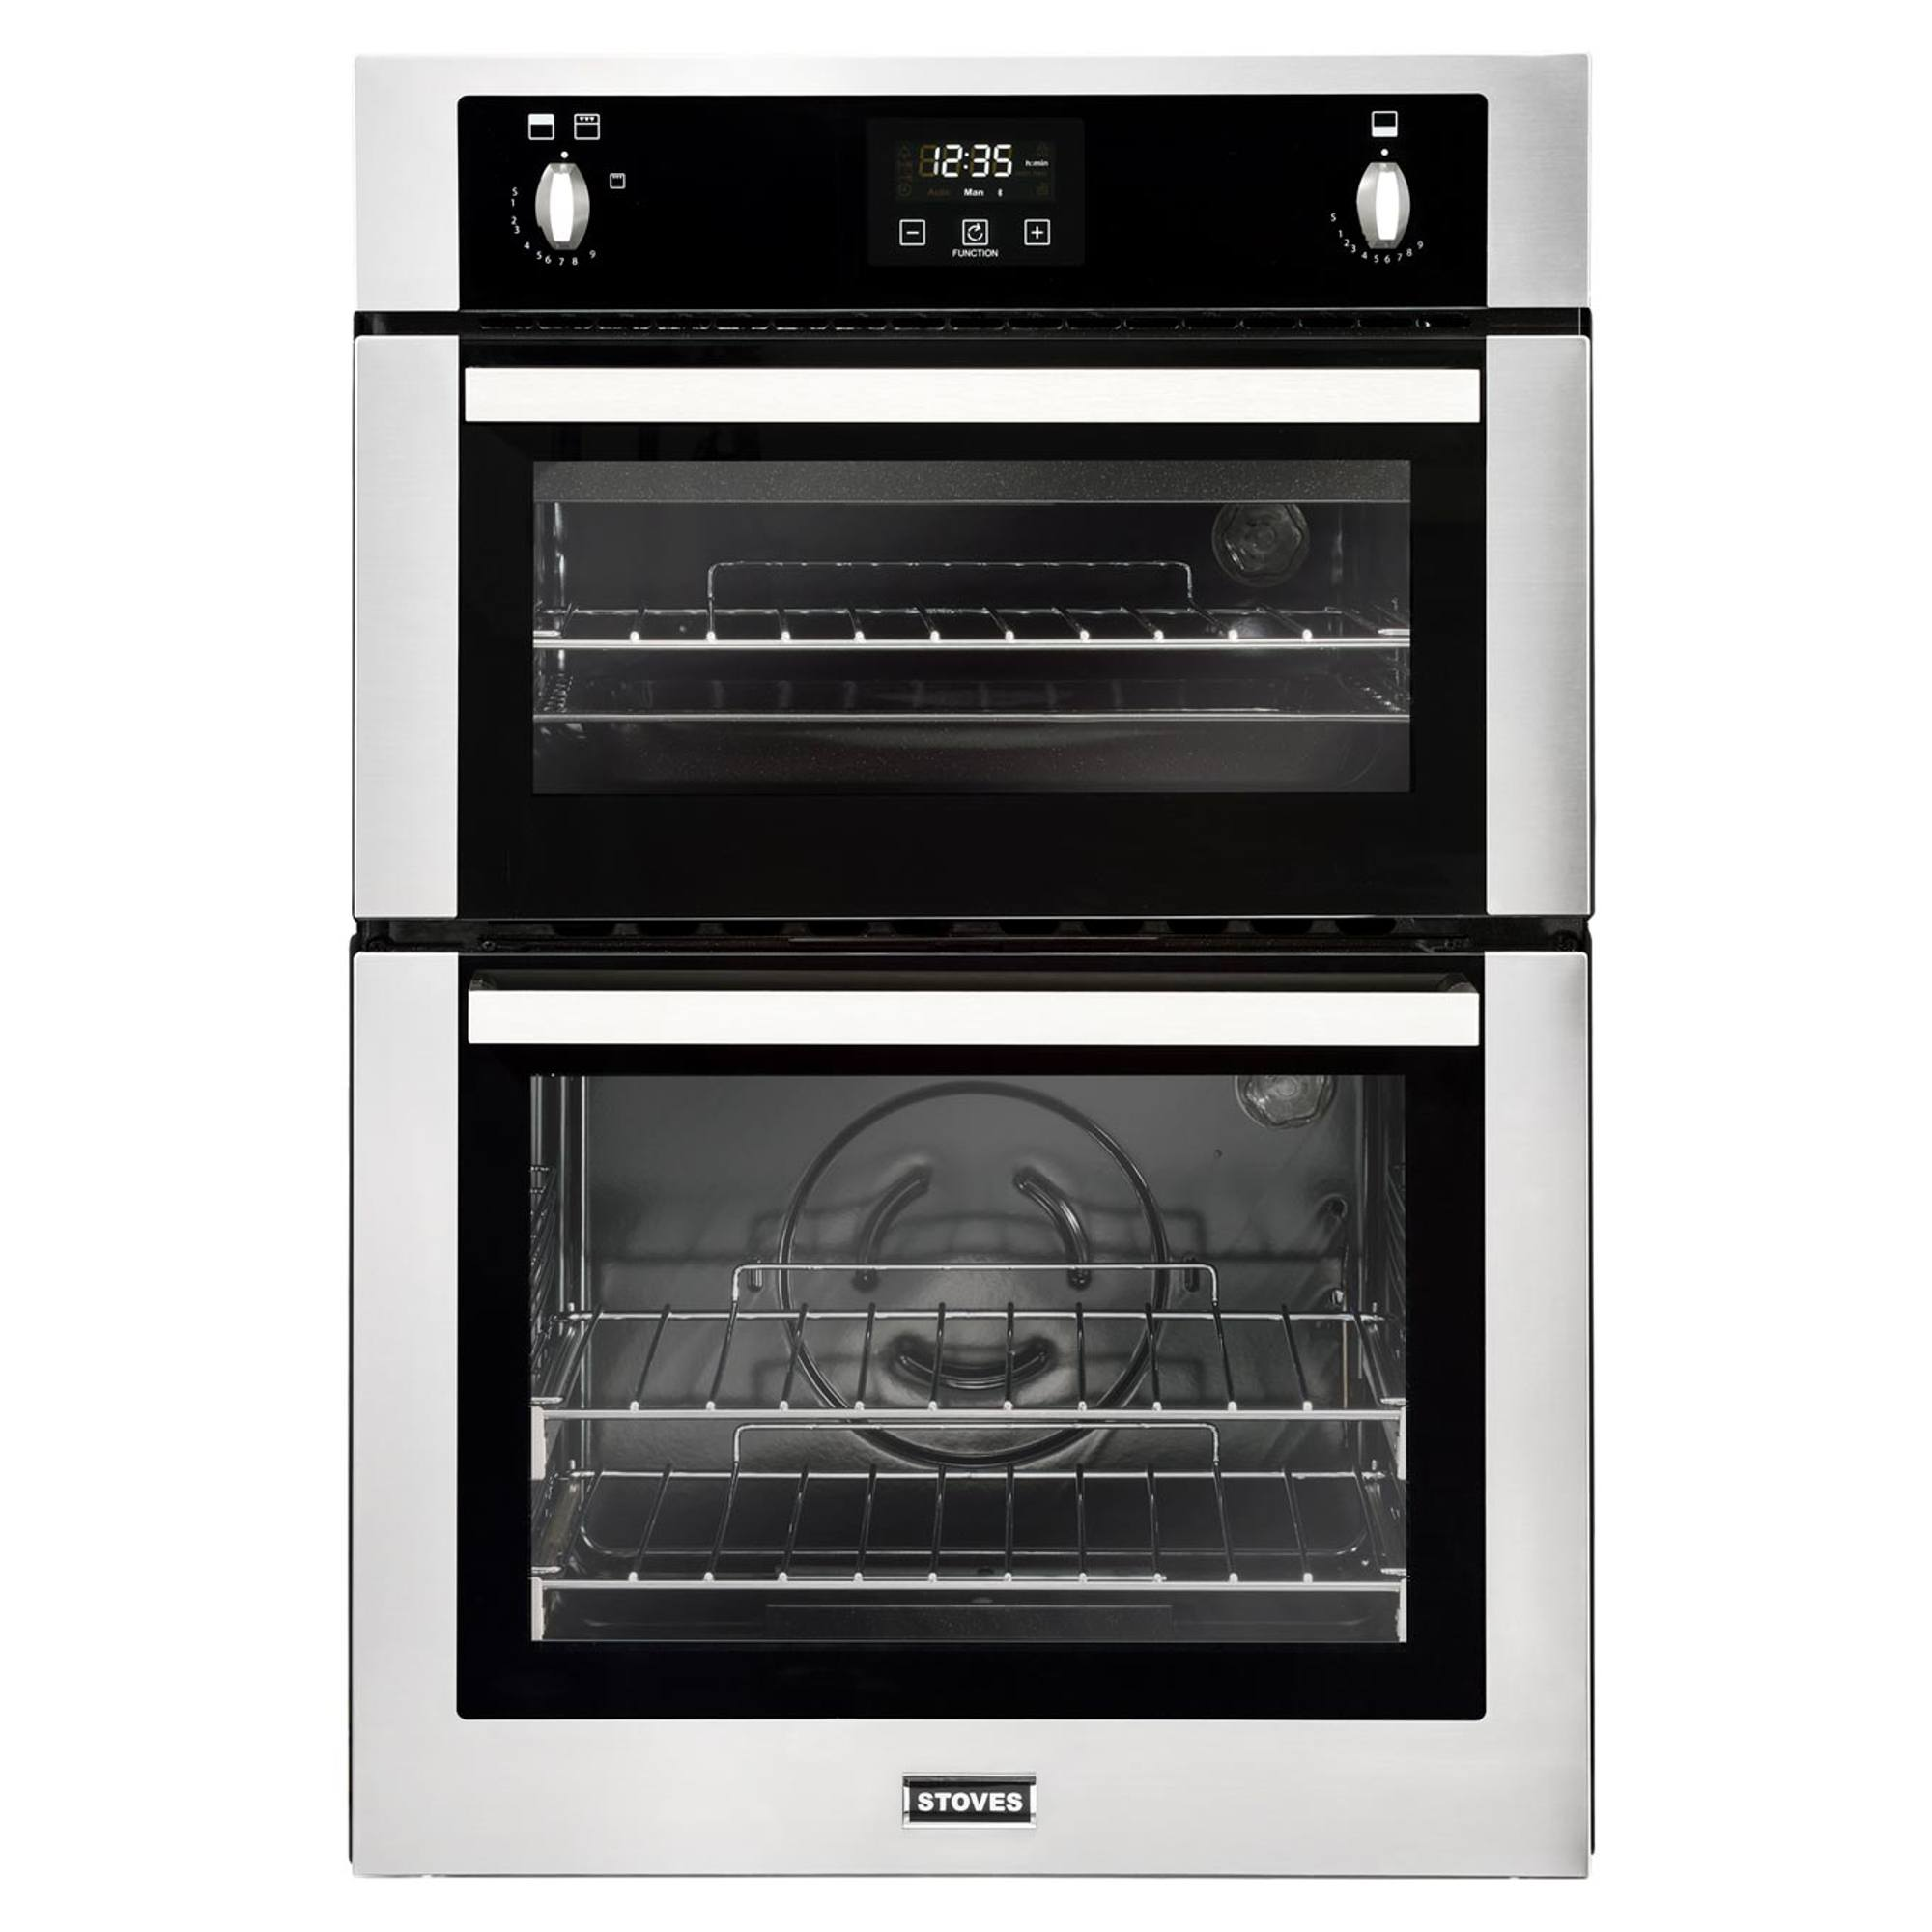 Stoves Bi900gsta Gas 77l Double Oven Stainless Steel